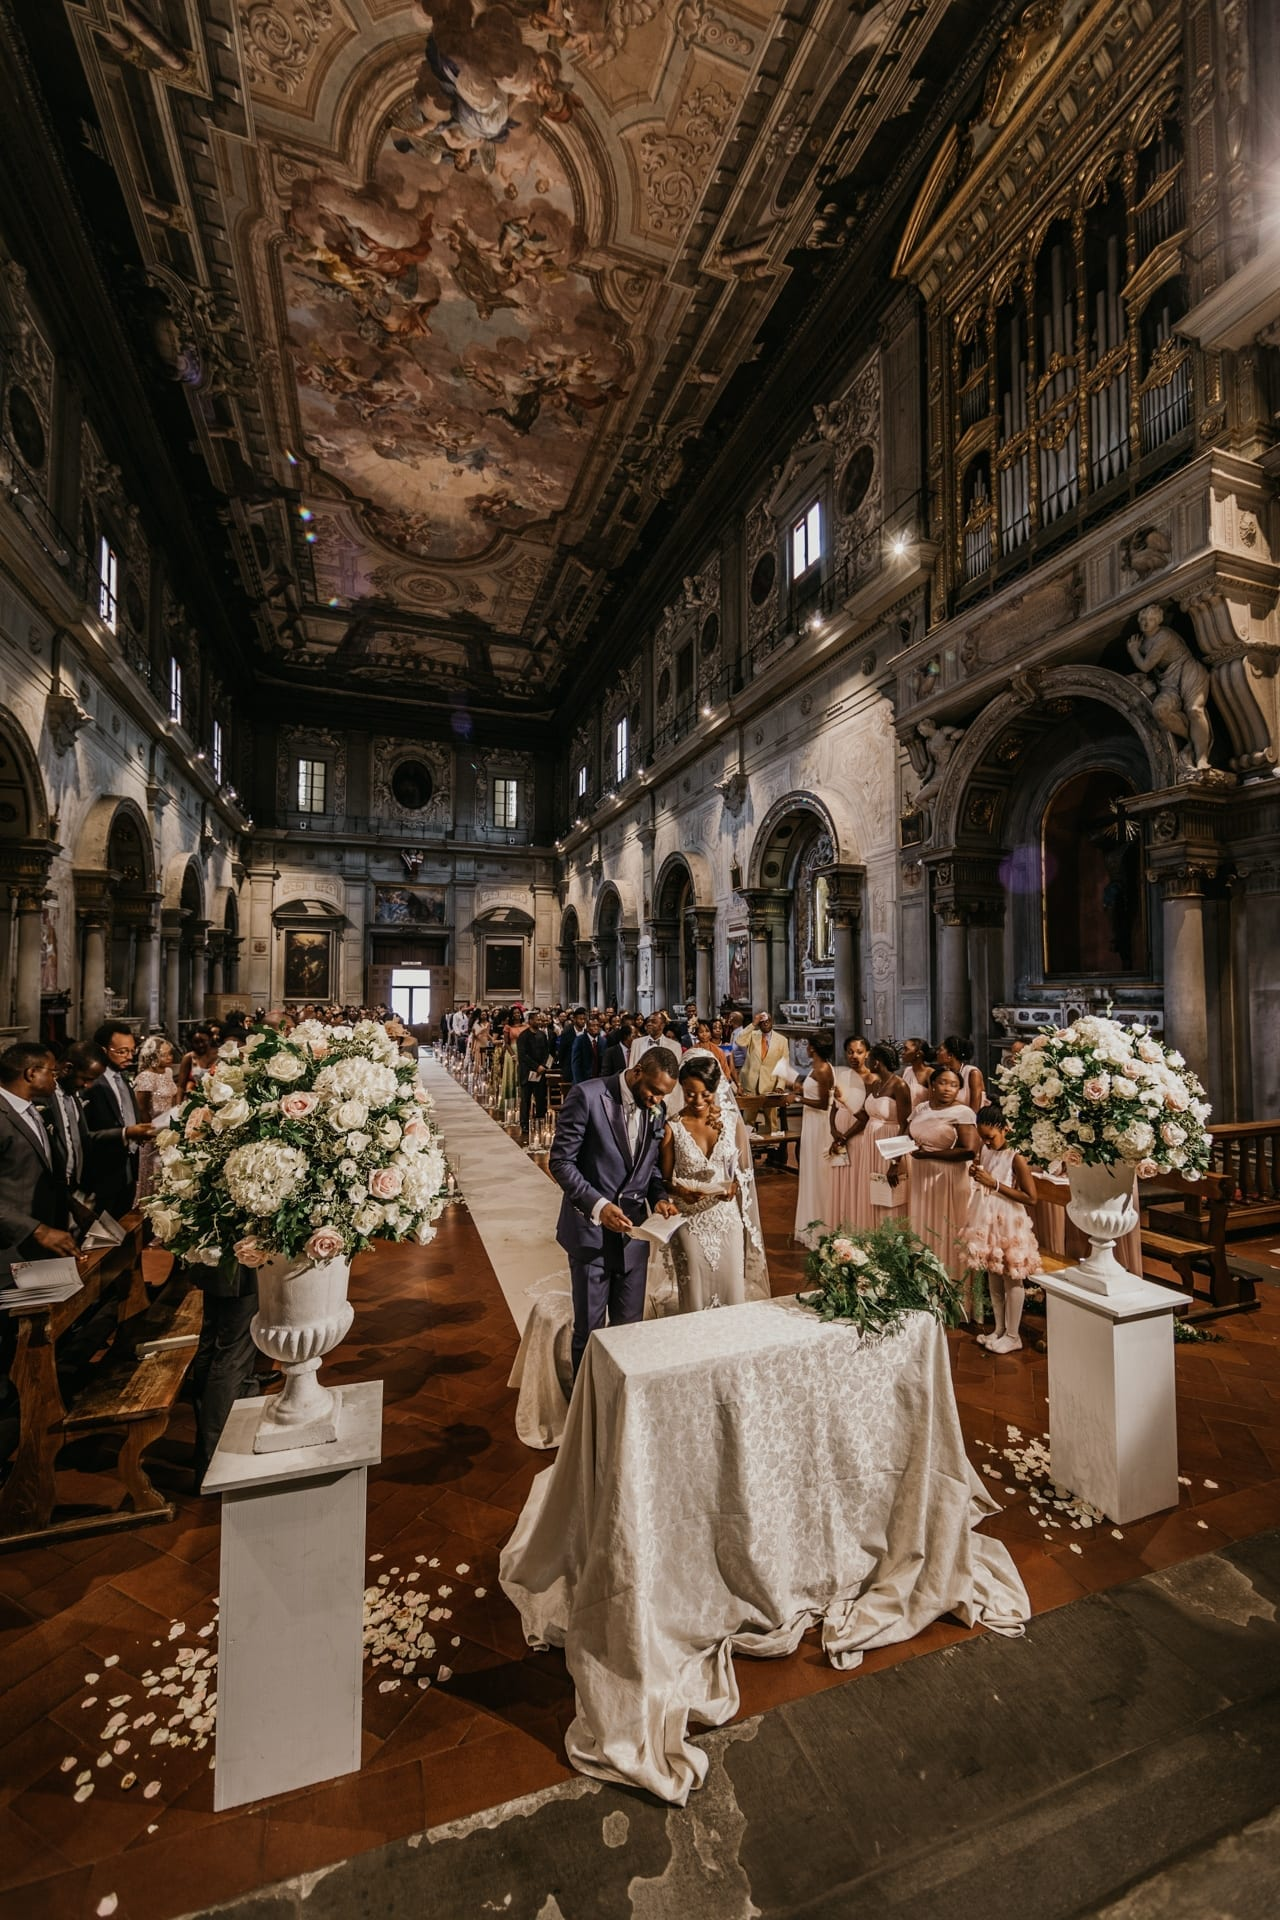 https://s3-eu-central-1.amazonaws.com/righiphotography-com/wp-content/uploads/2020/02/02183129/Wedding-Photo-No-Pose-Studio-Fotografico-Righi-RIGHI-108.jpg